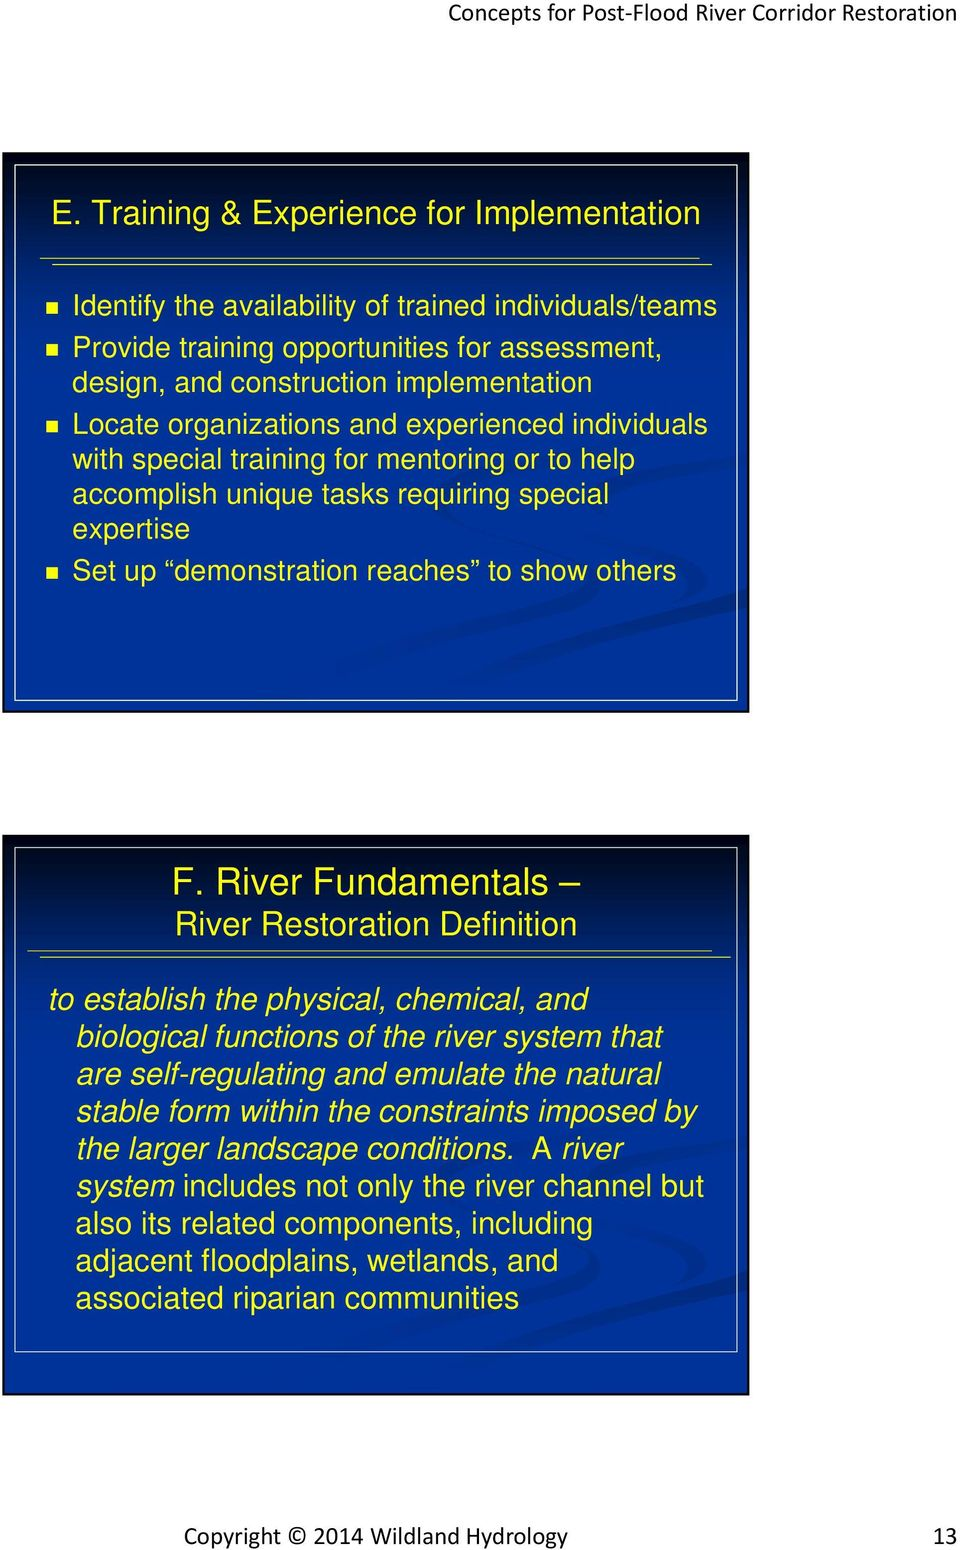 River Fundamentals River Restoration Definition to establish the physical, chemical, and biological functions of the river system that are self-regulating and emulate the natural stable form within